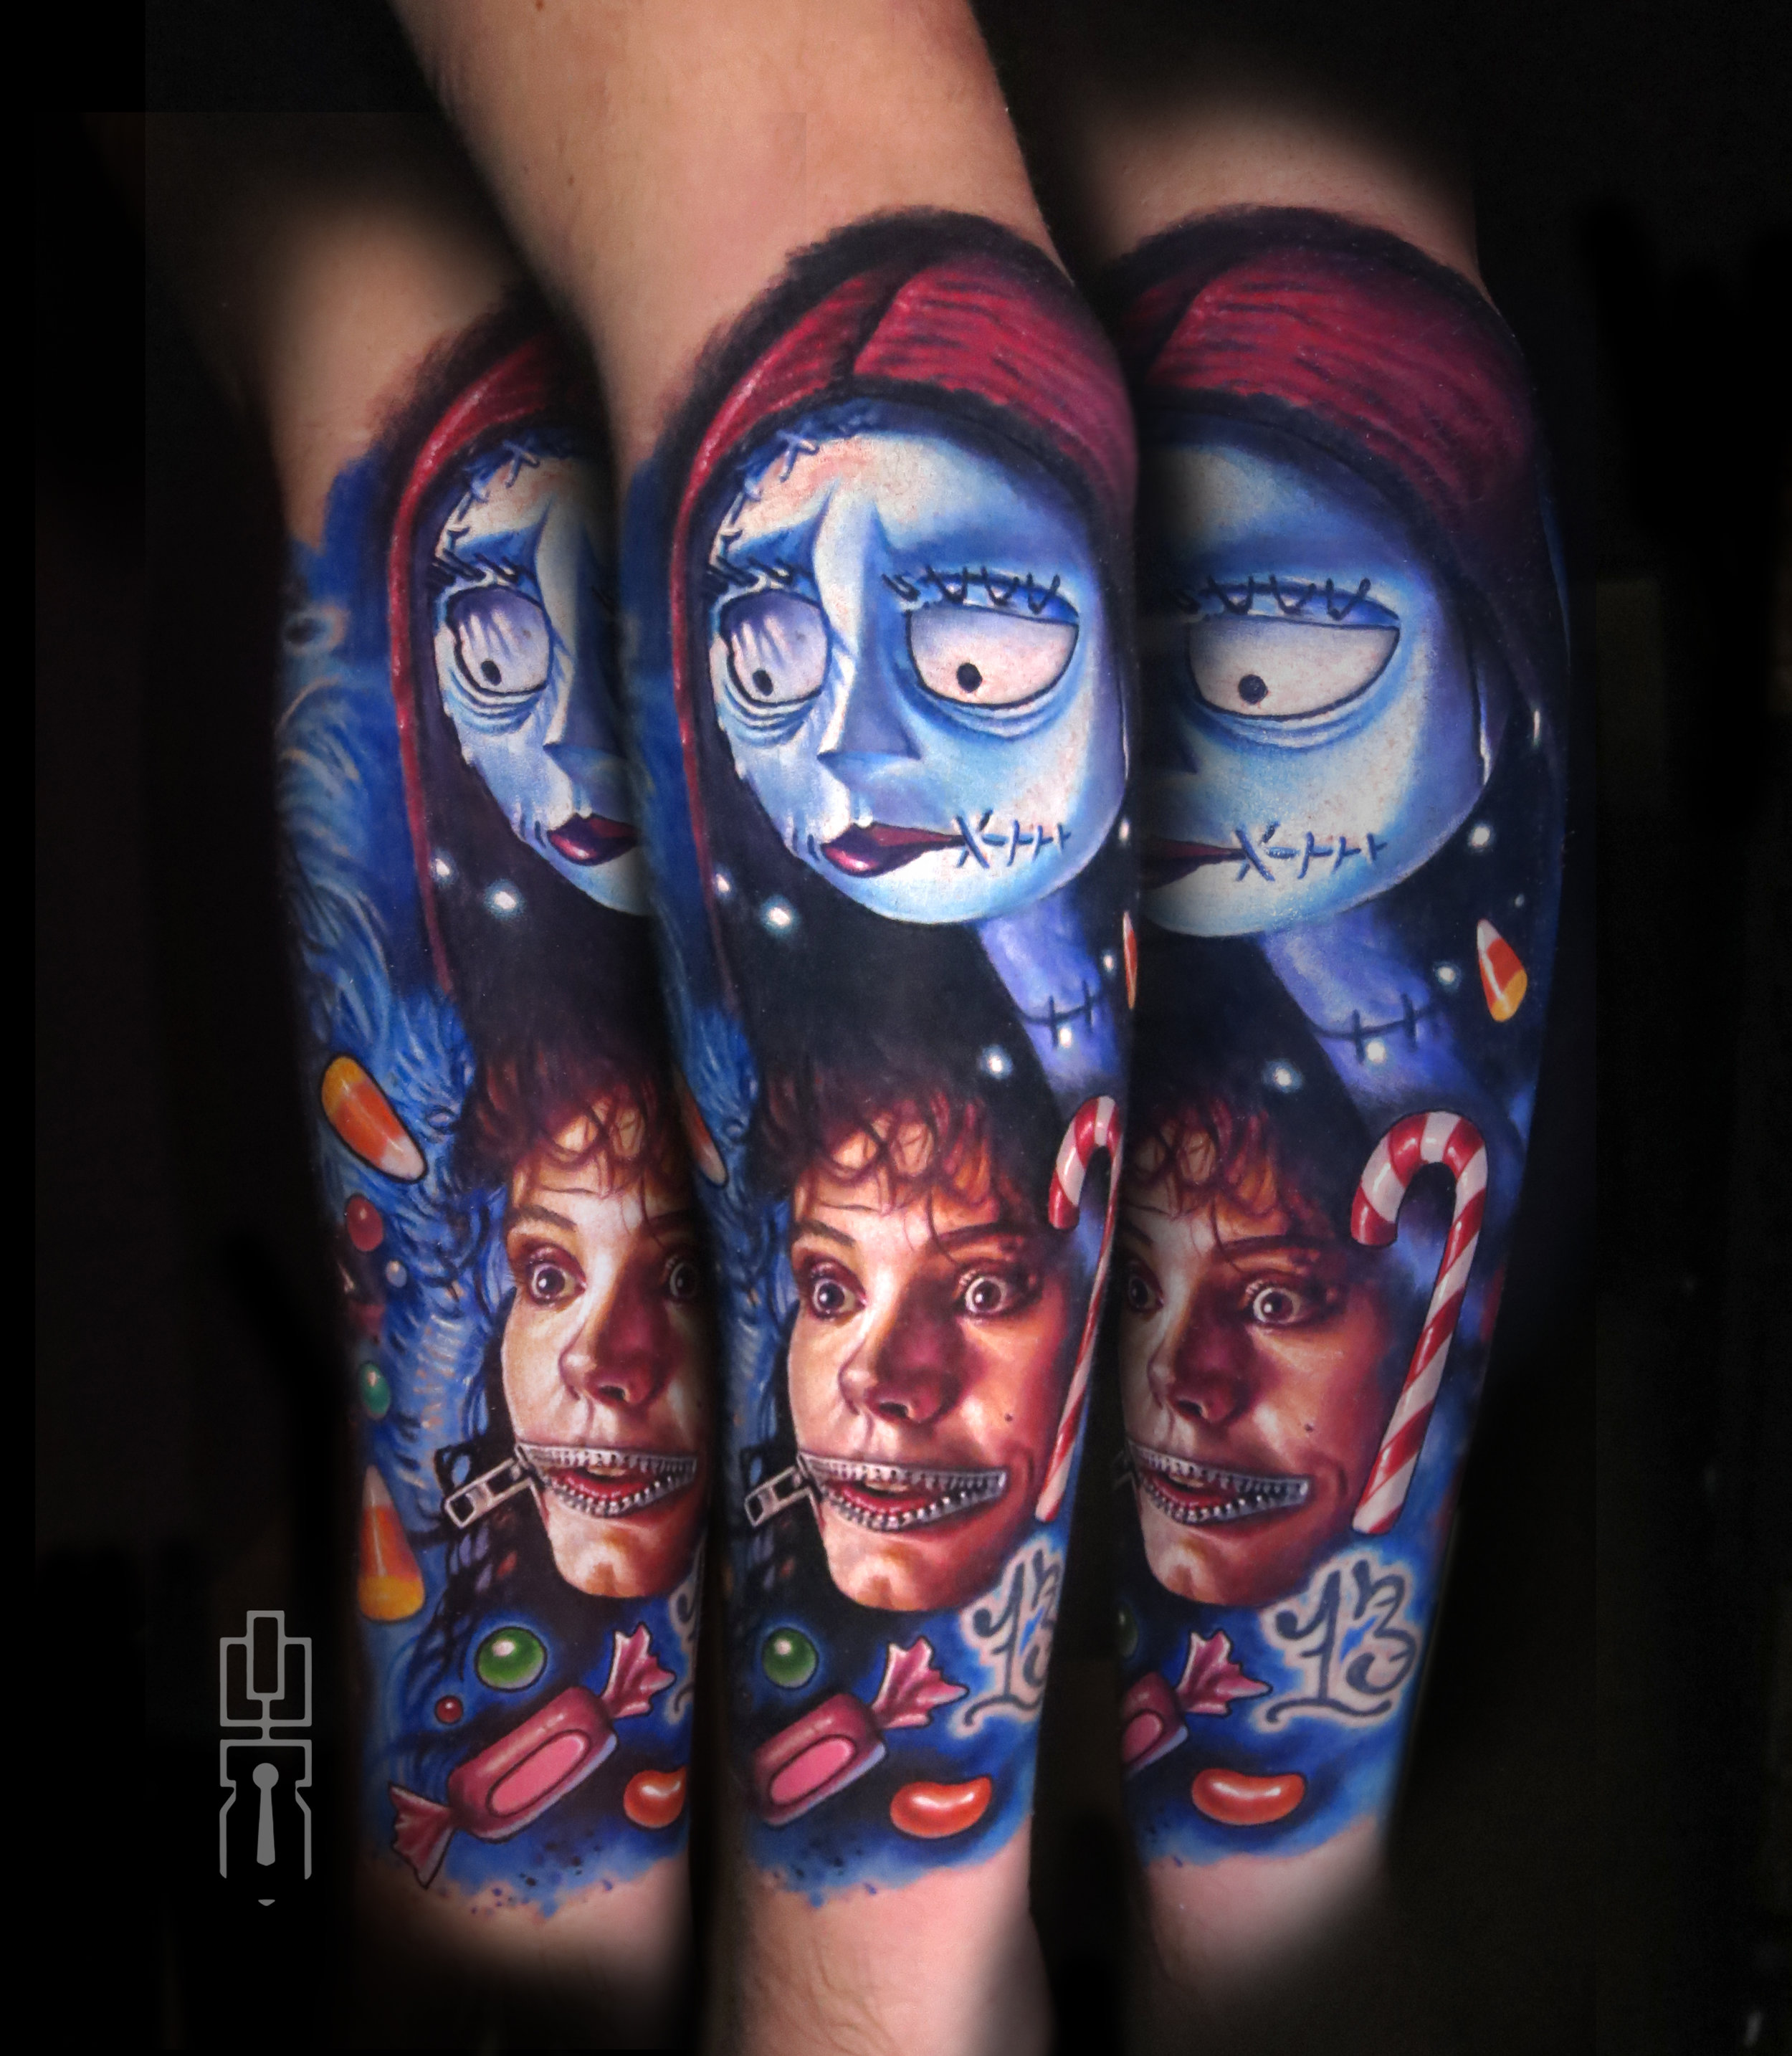 sally nightmare geena davis barbara beetlejuice full tattoo.jpg